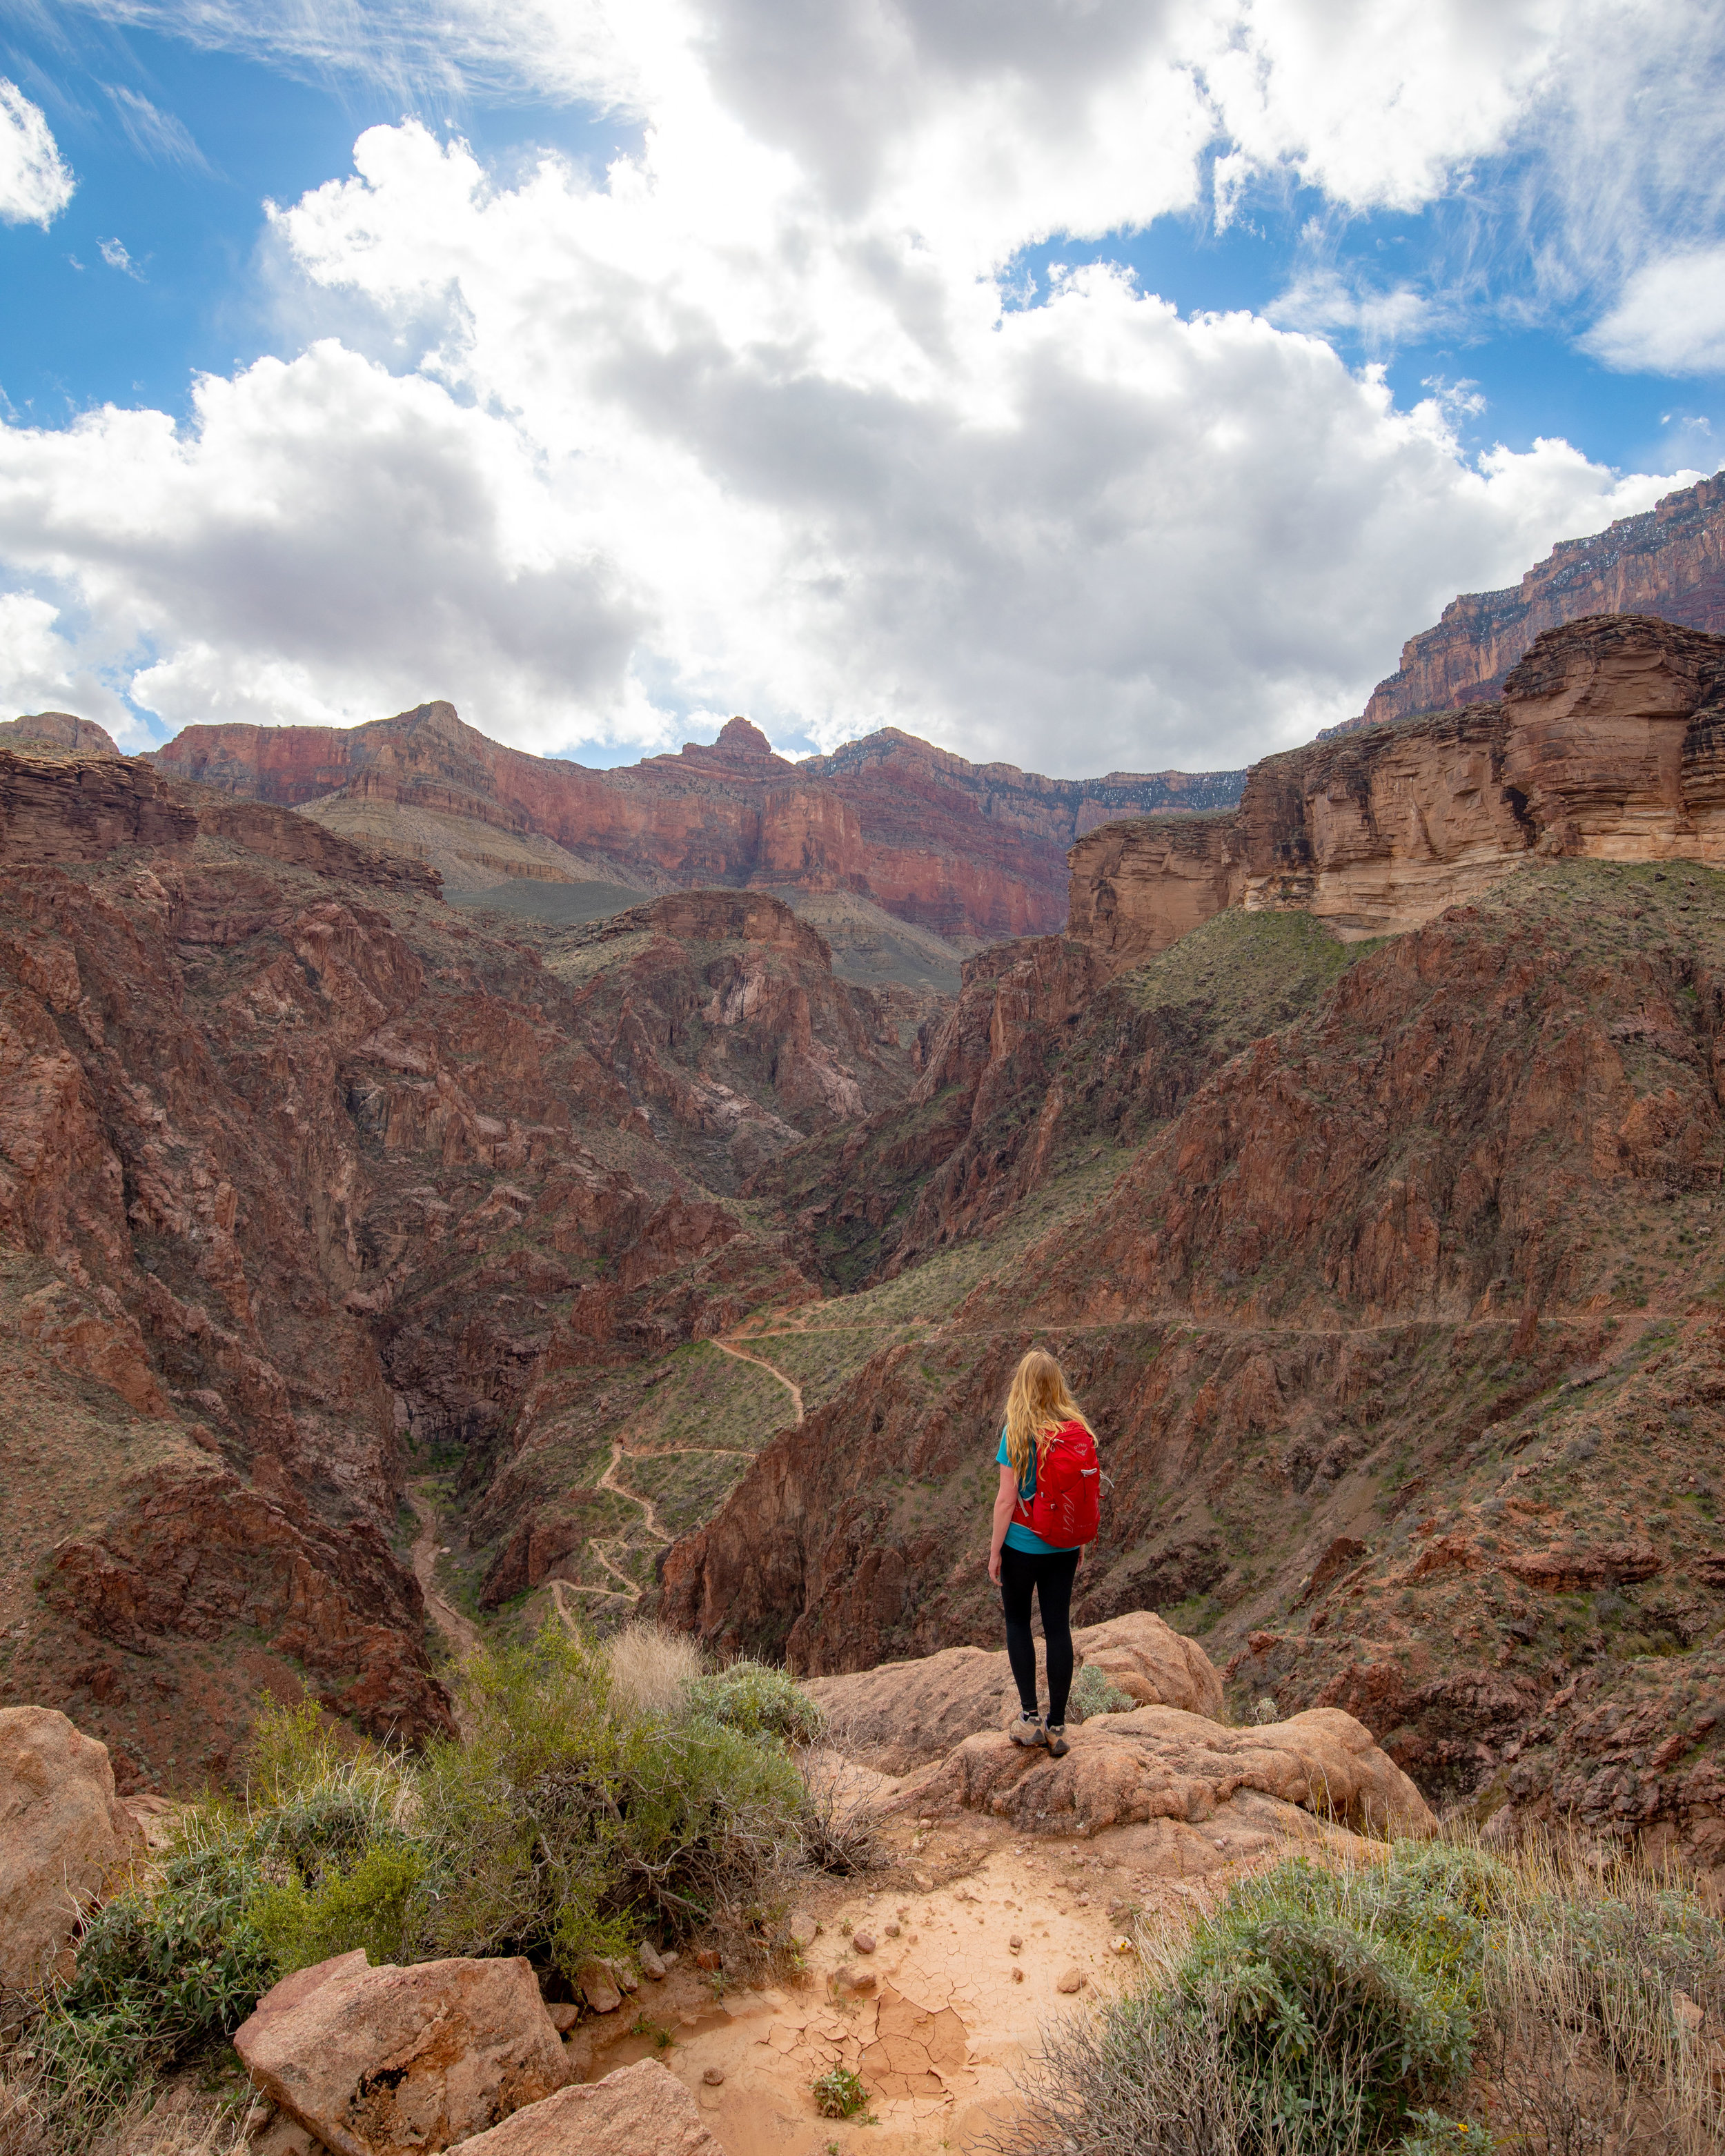 The Bright Angel Trail